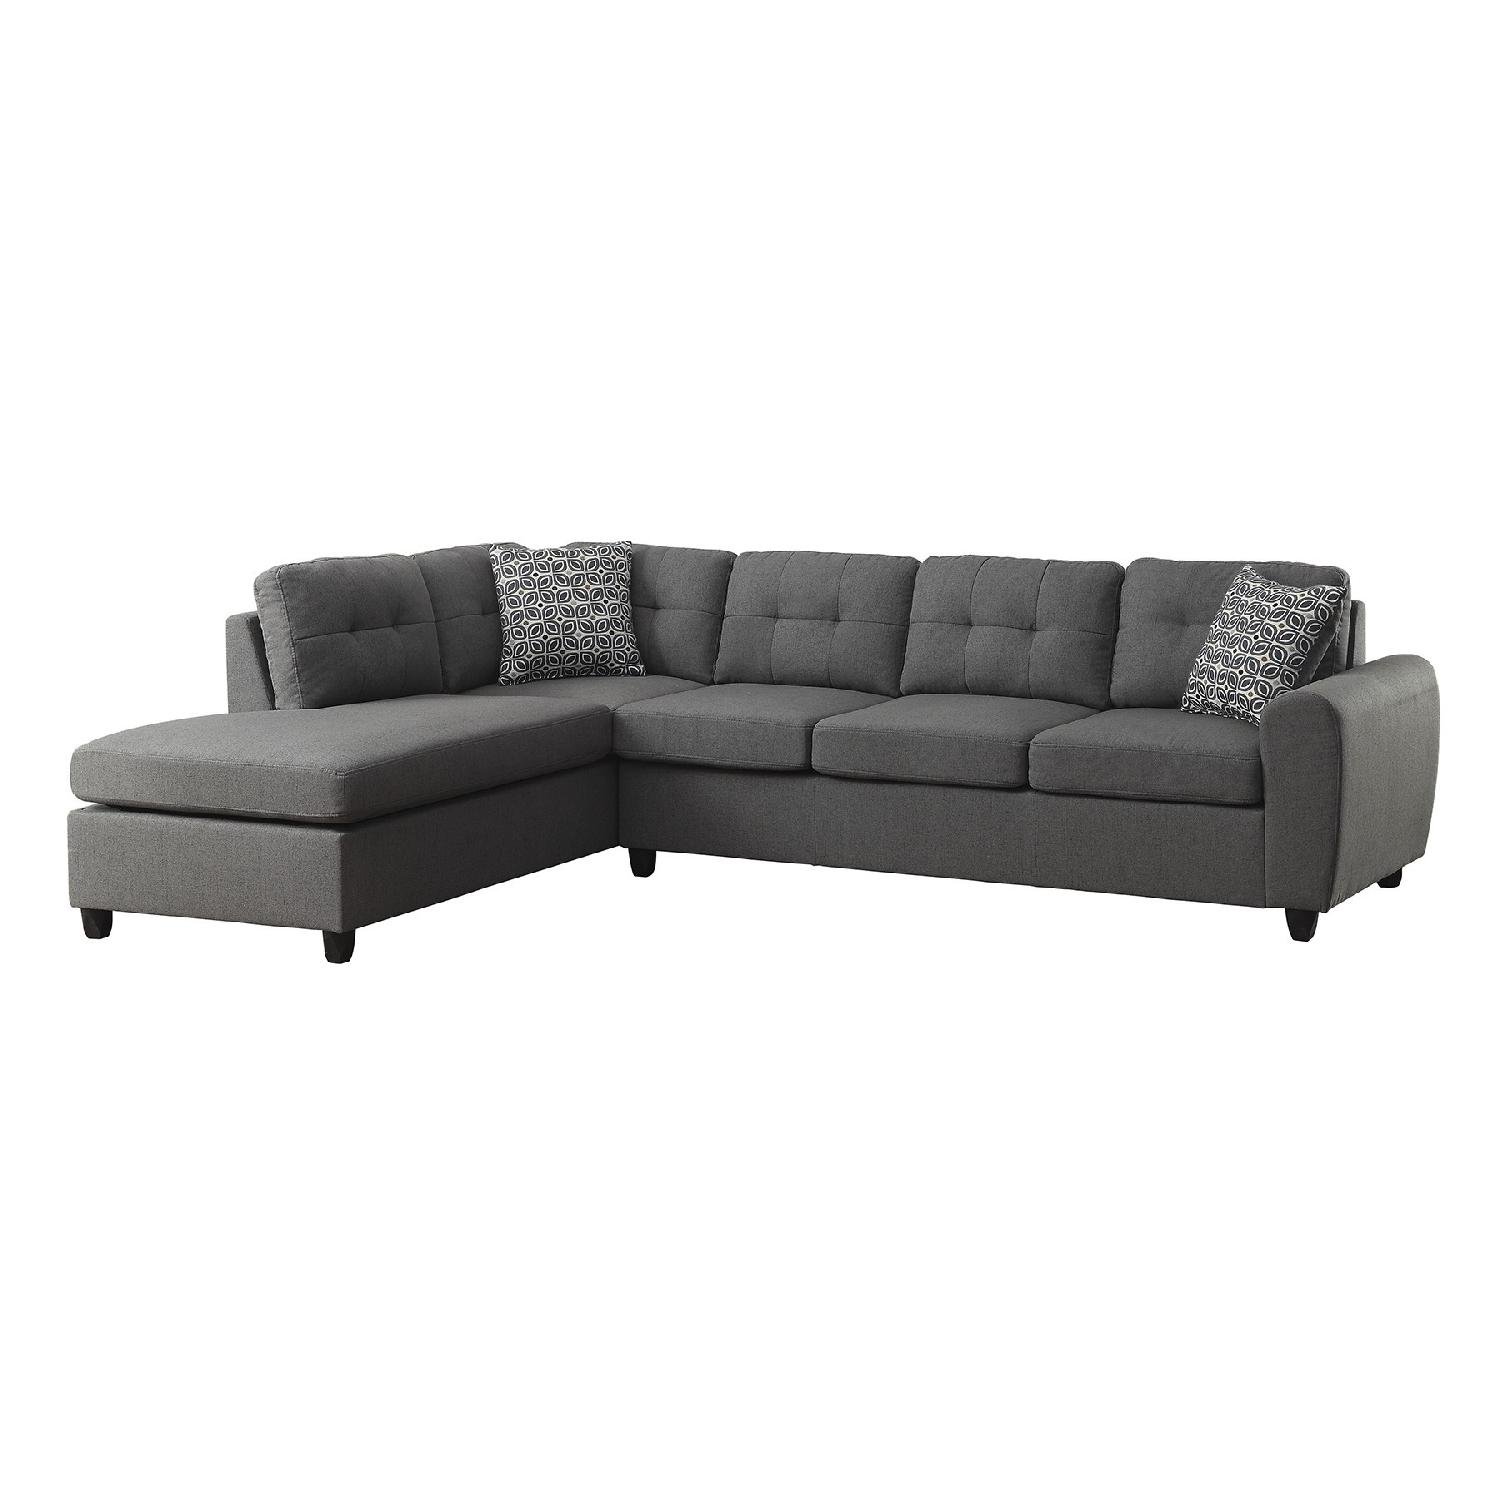 hayden sectional sofa with reversible chaise small sofas rooms to go contemporary in grey fabric w button tufted